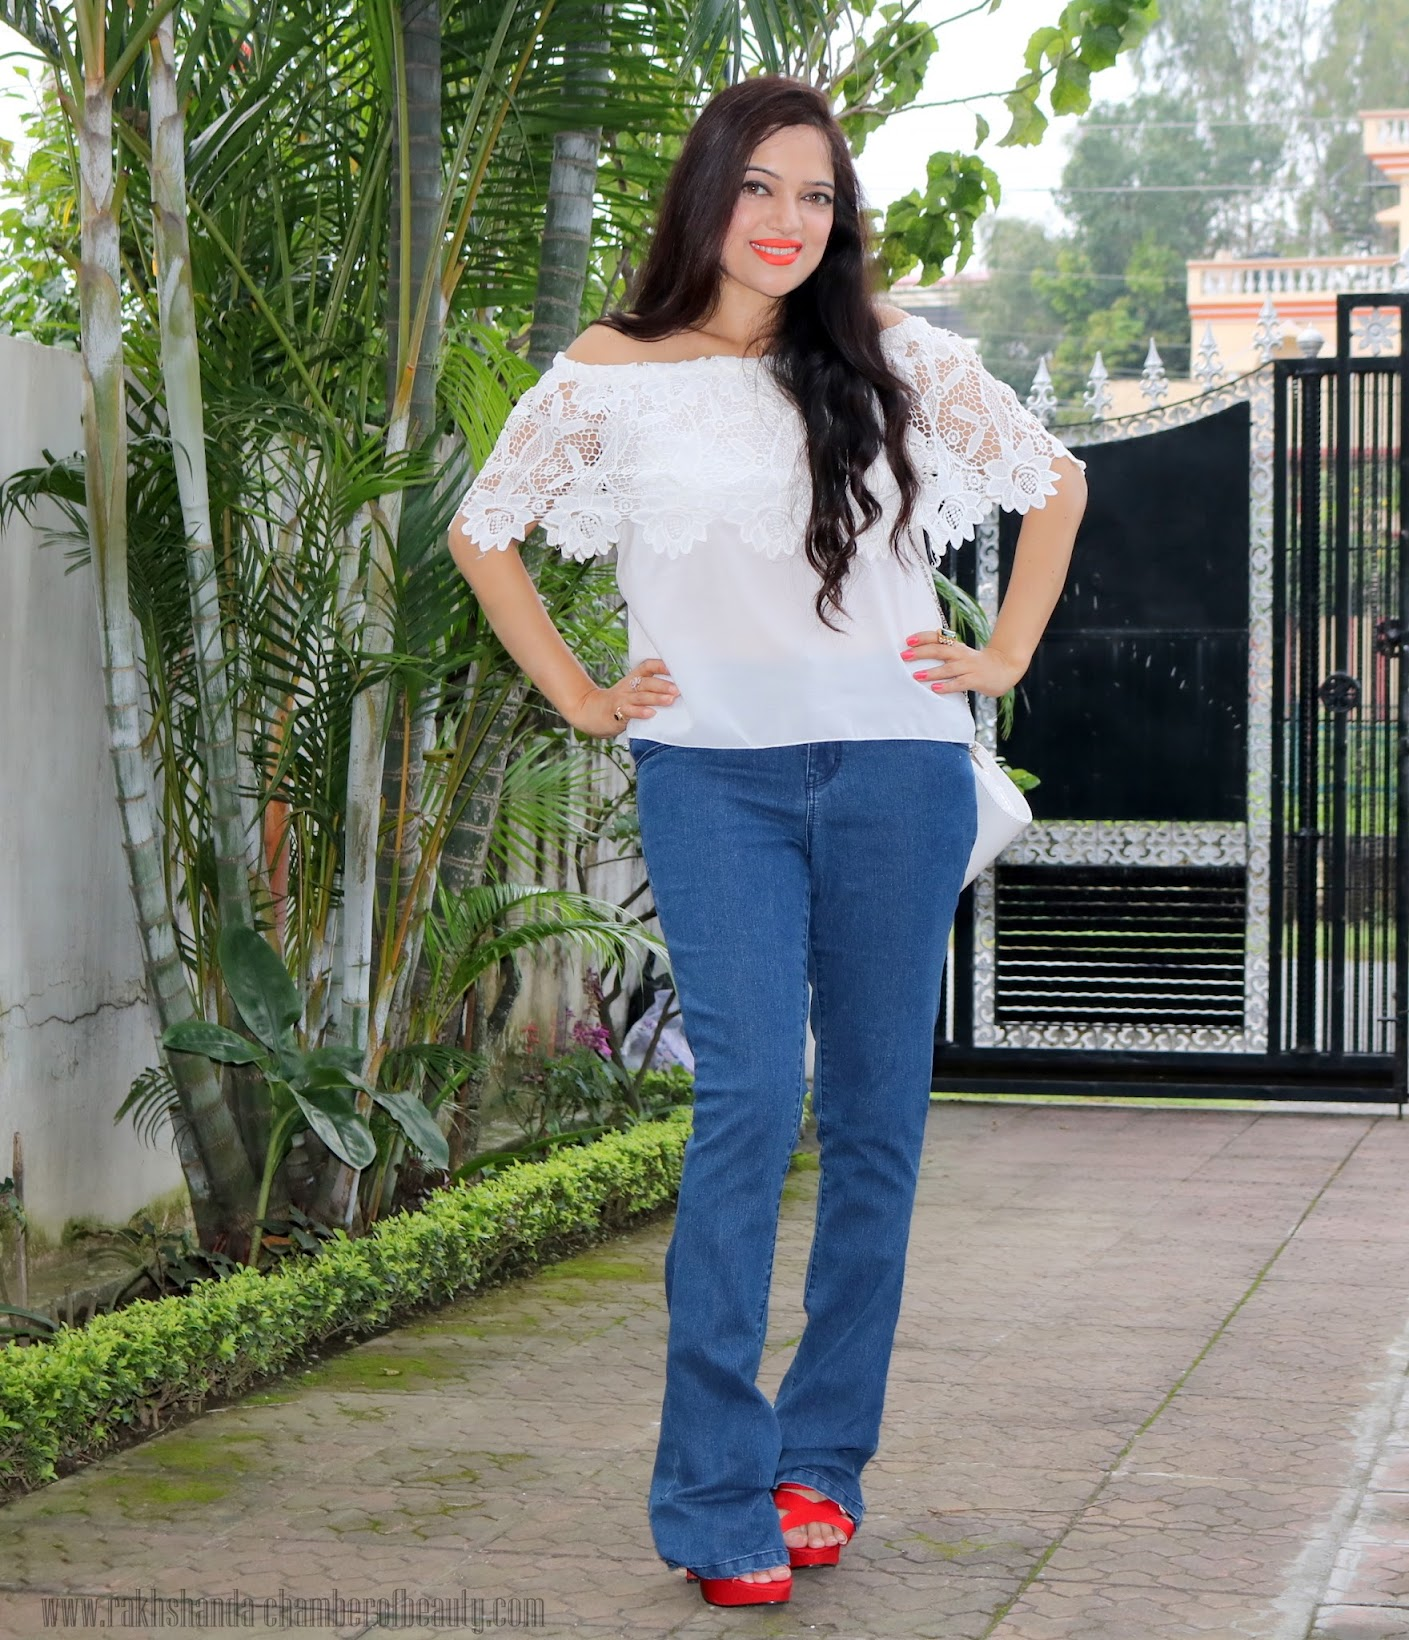 Styling an off-shoulder lace top- OOTD, Lace top from cndirect.com, retro fashion, fashion trends 2015, Indian fashion blogger, Chamber of Beauty